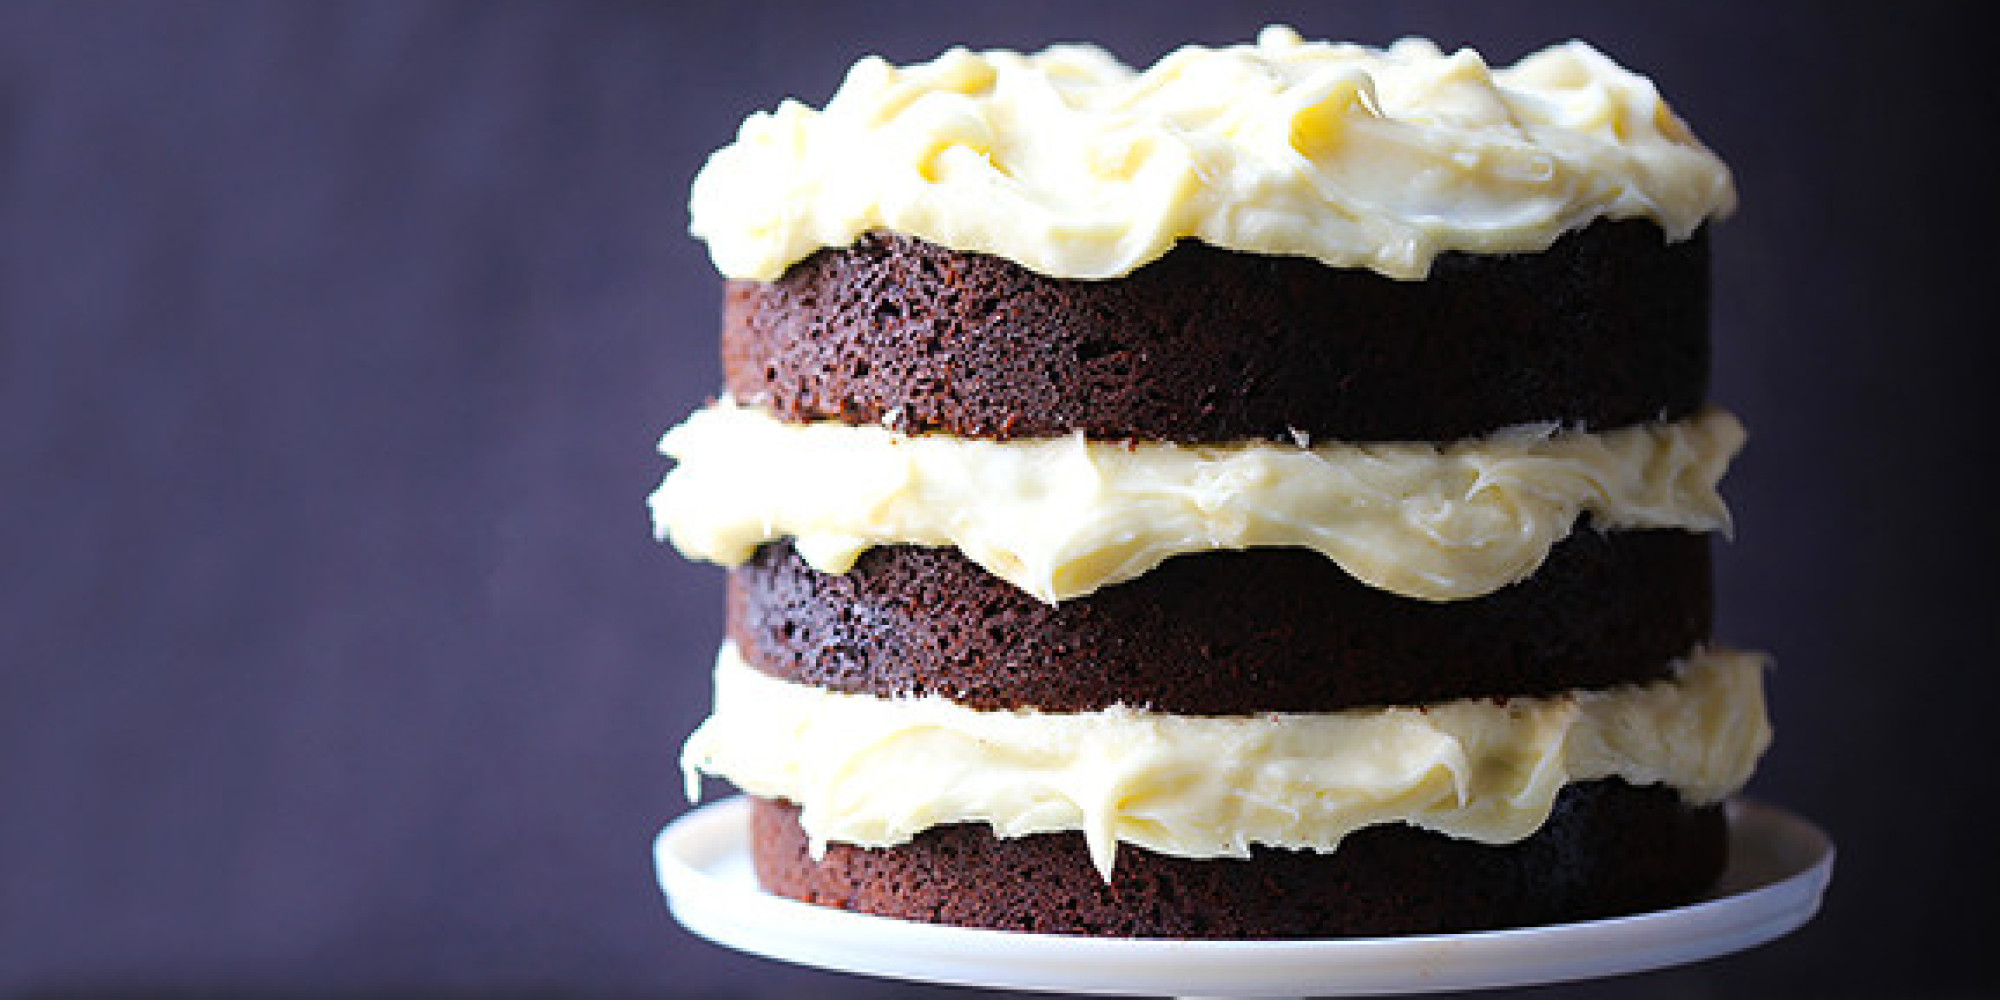 Lemon Curd Cake With Whipped Cream Frosting